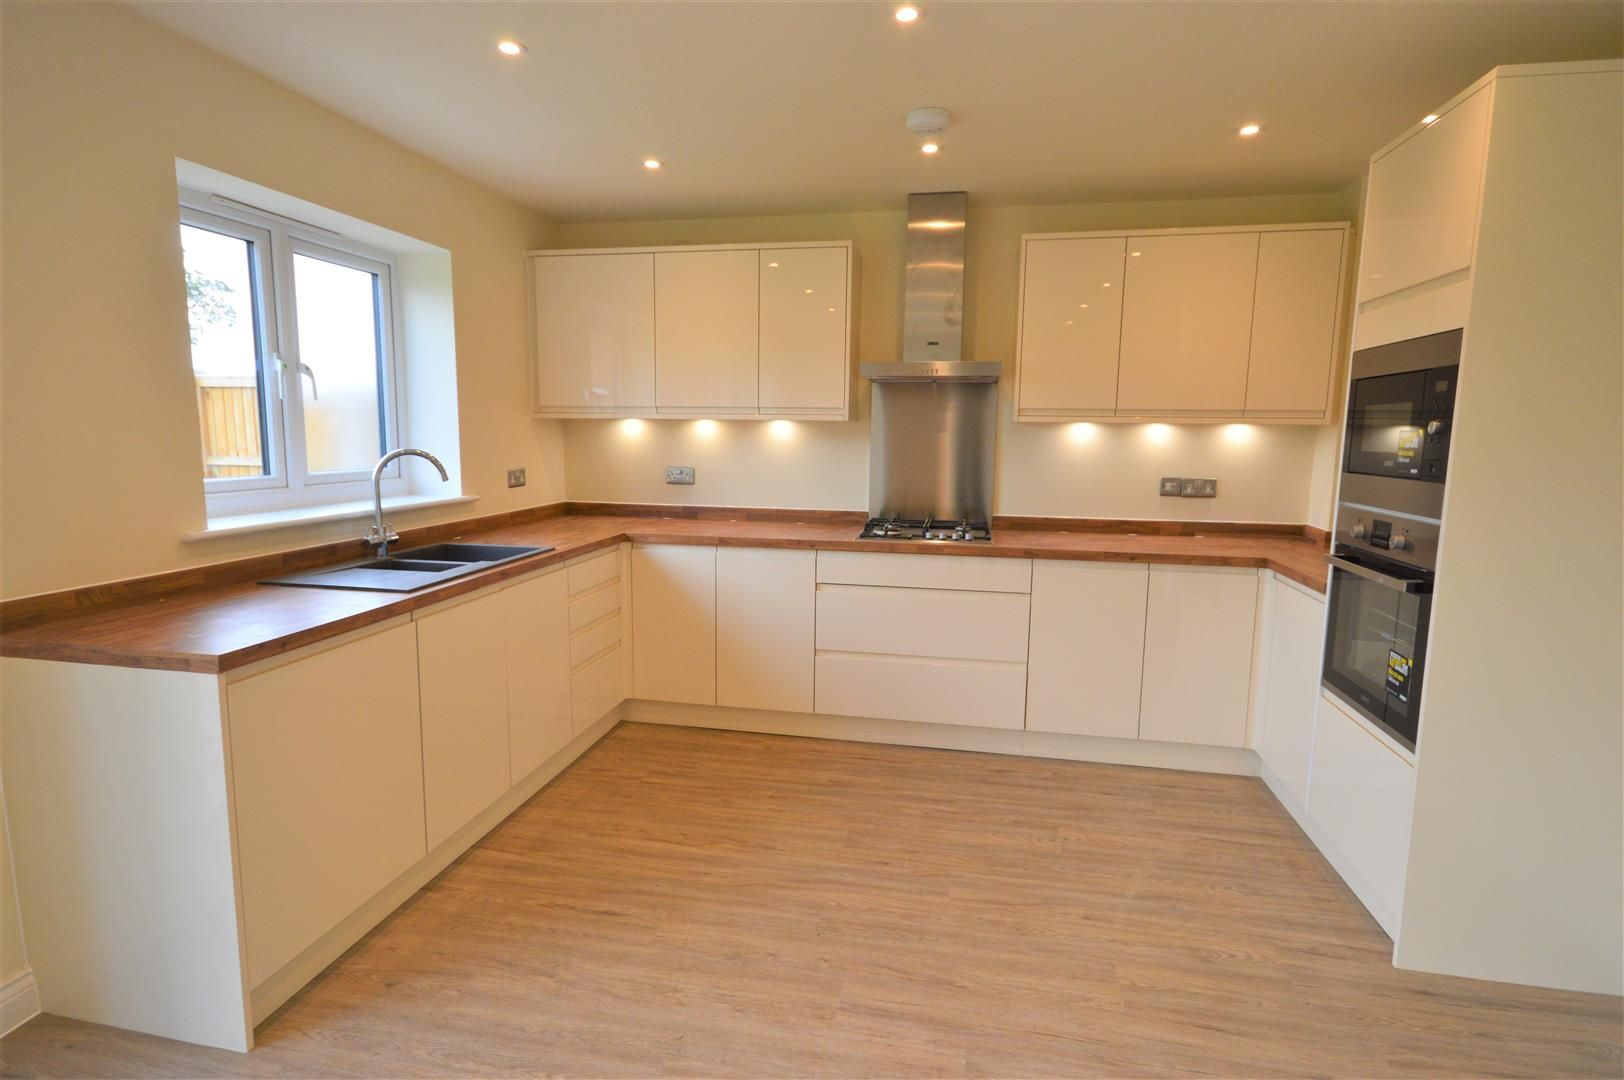 4 bed detached for sale in Kingsland 3